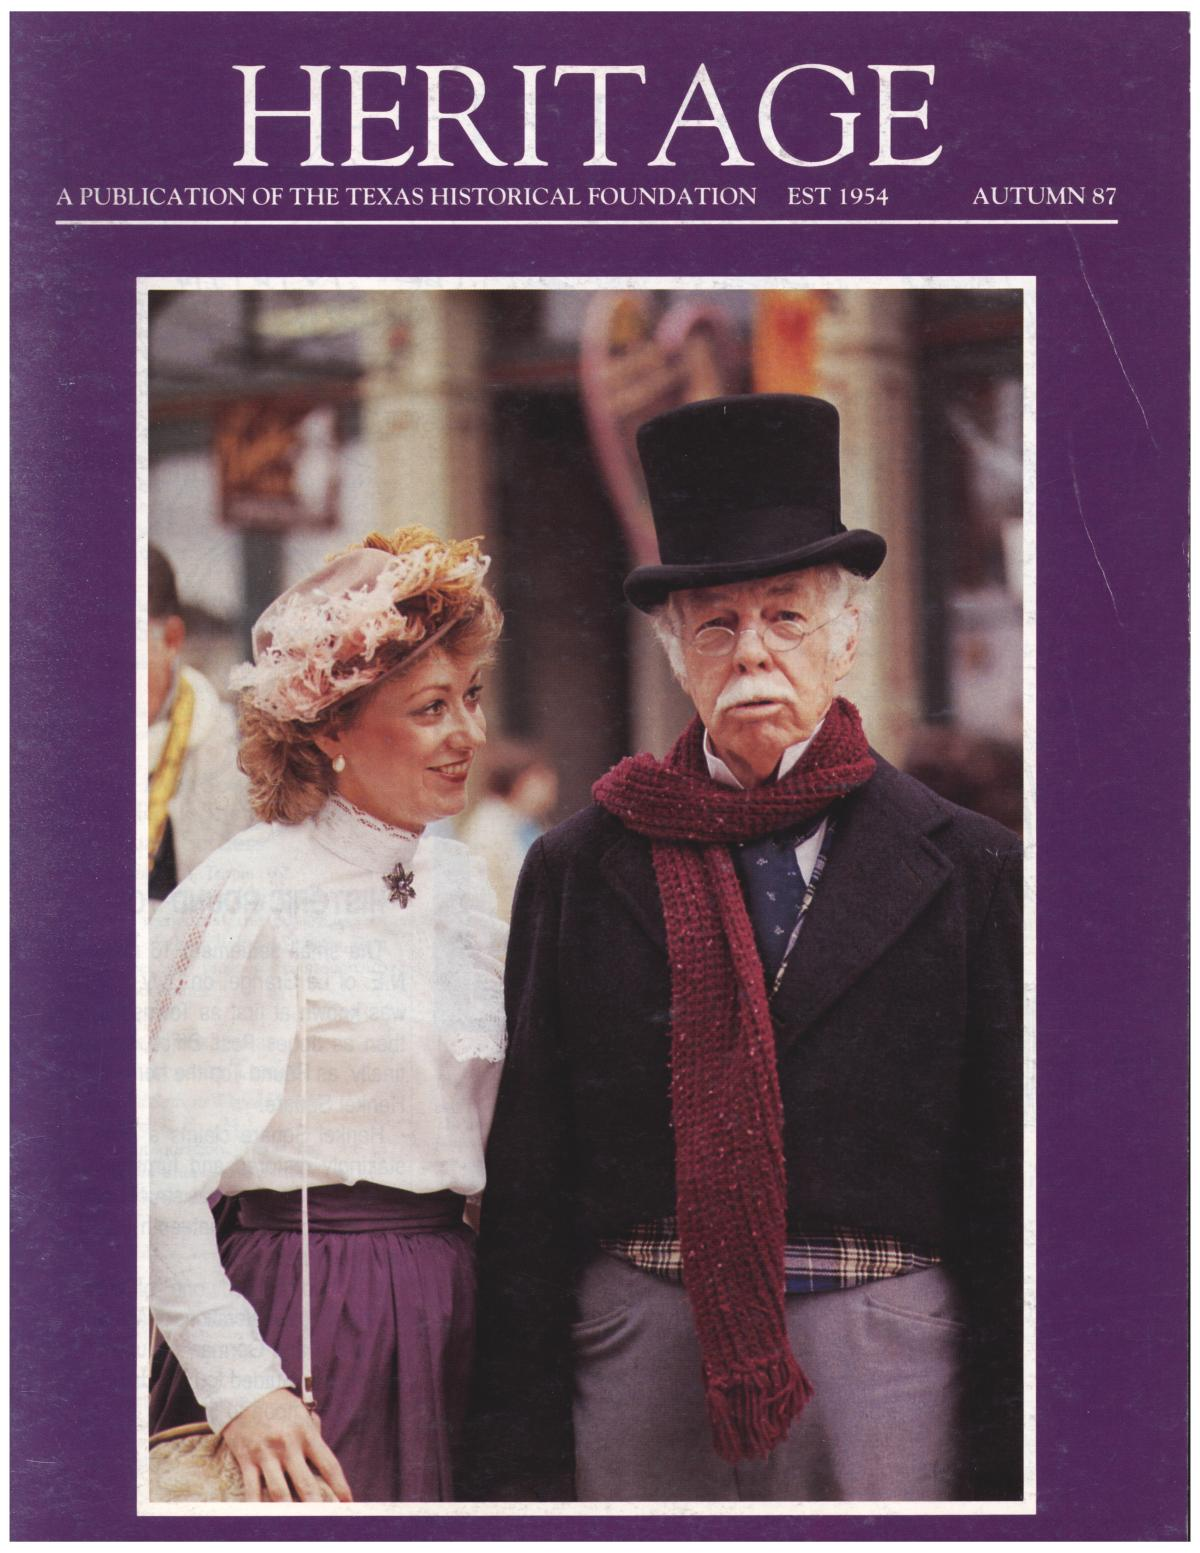 Heritage, Volume 5, Number 3, Autumn 1987                                                                                                      Front Cover